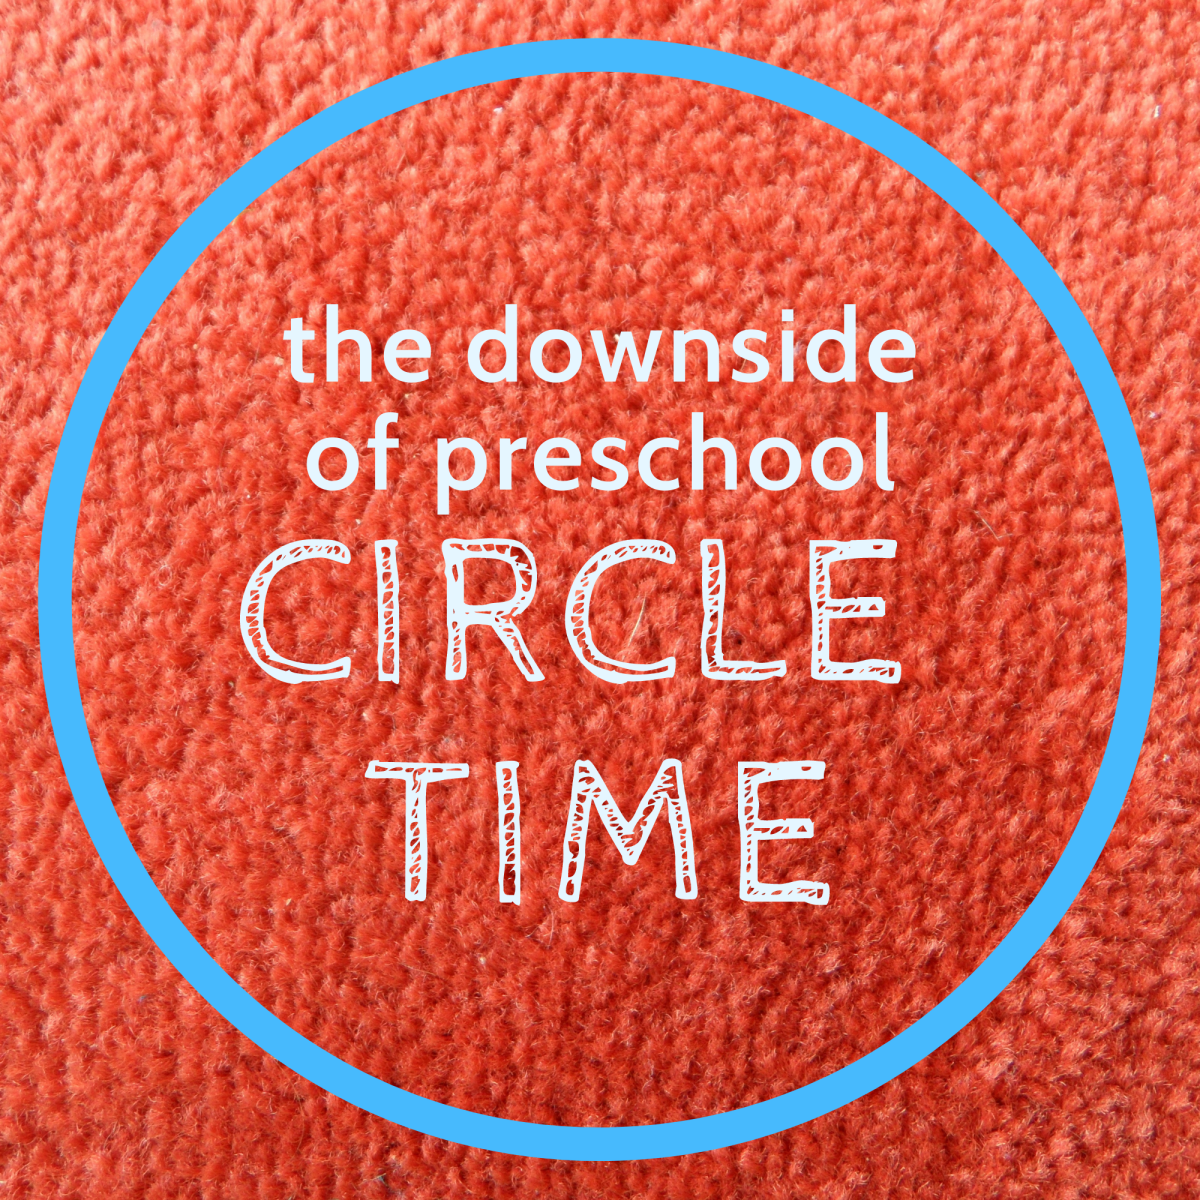 Small group activities, hands-on learning, and play are far more effective and invigorating than circle time.